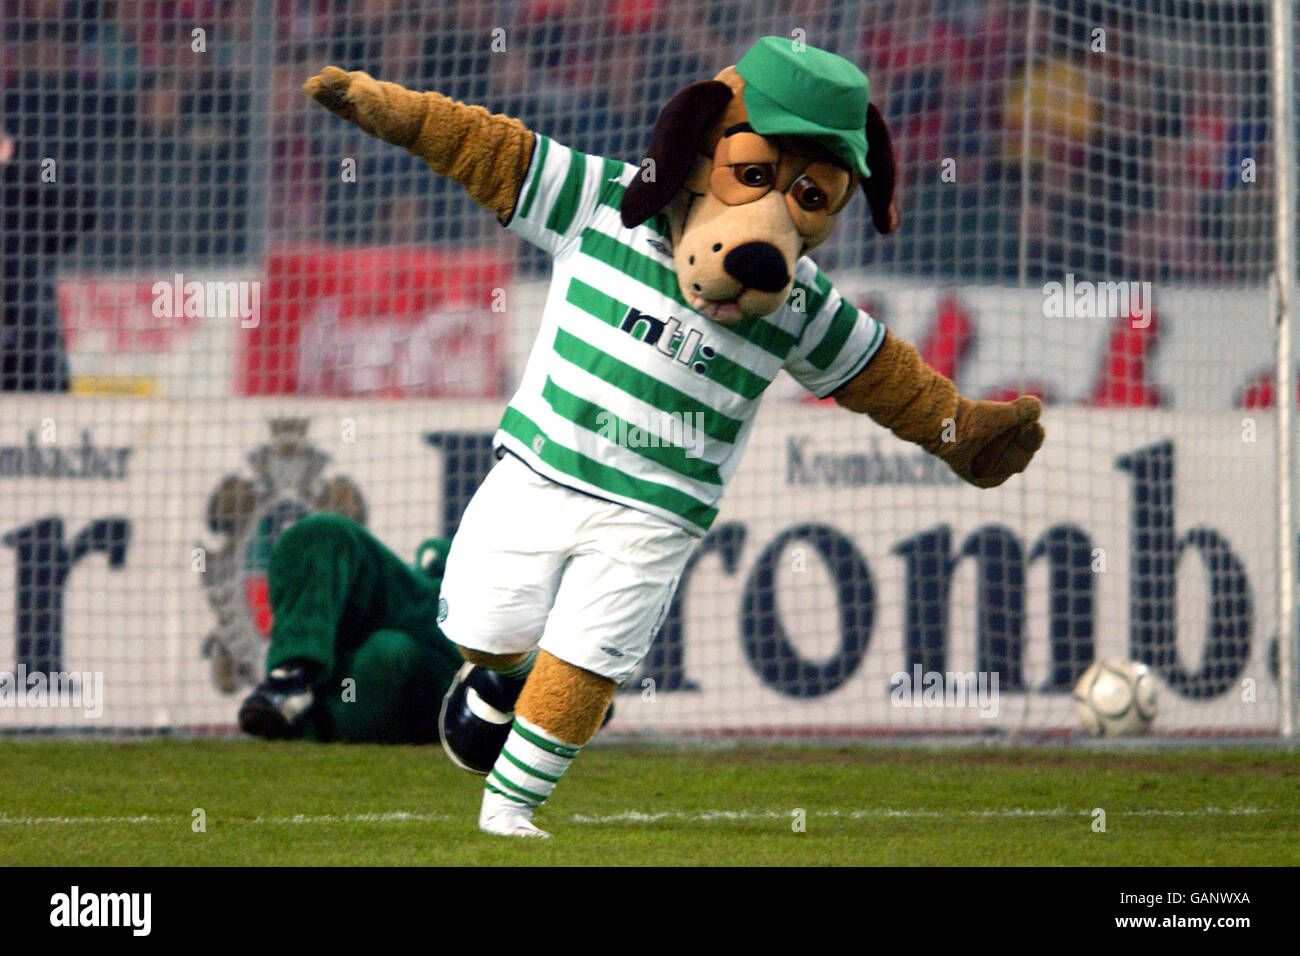 Vfb Stuttgart Mascot High Resolution Stock Photography And Images Alamy